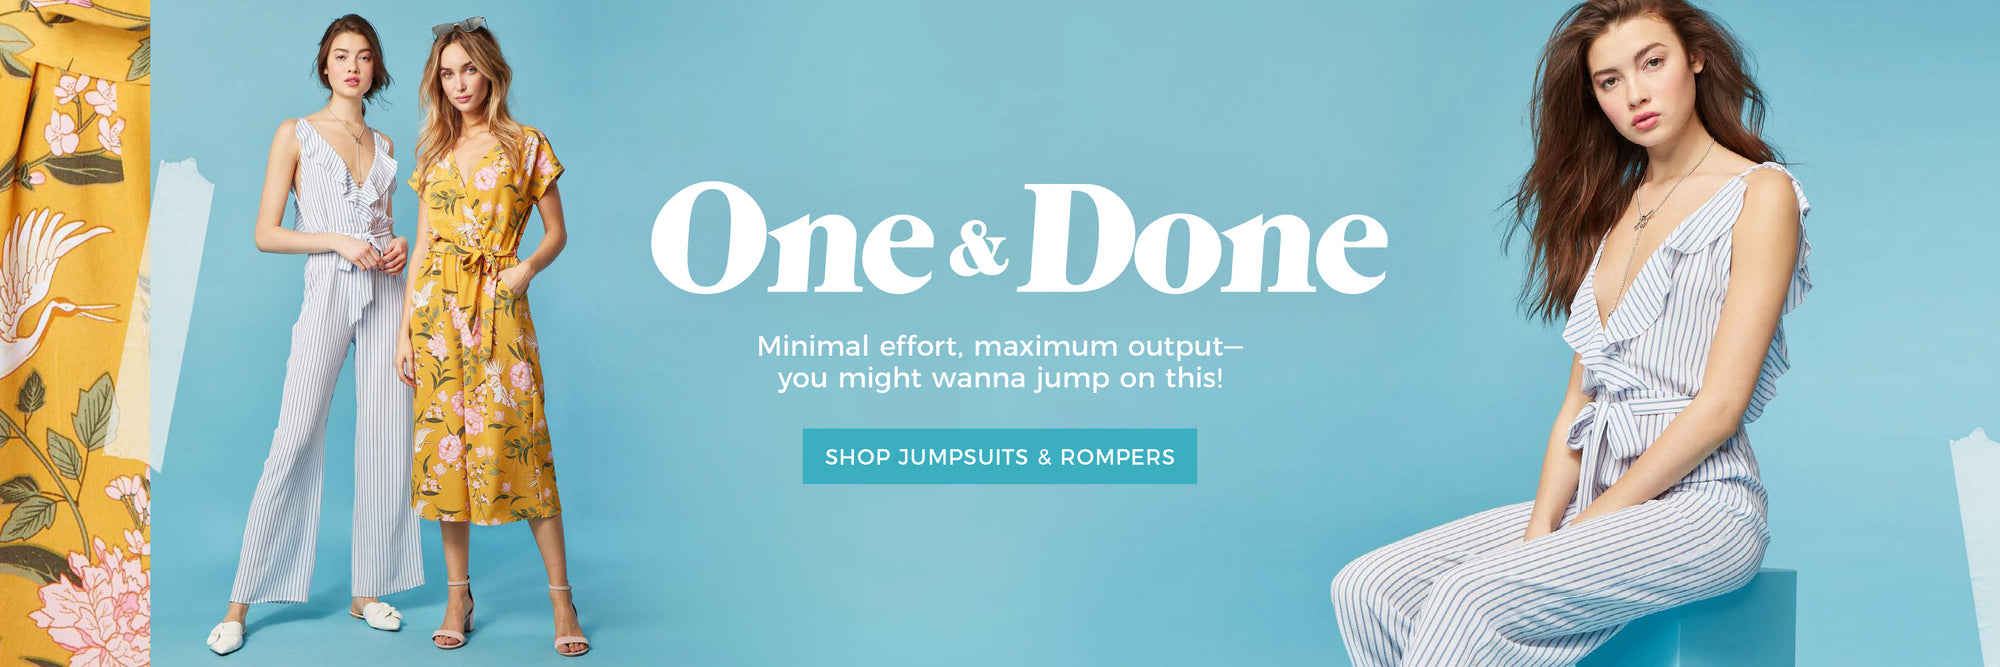 One & Done - Shop Jumpsuits & Rompers